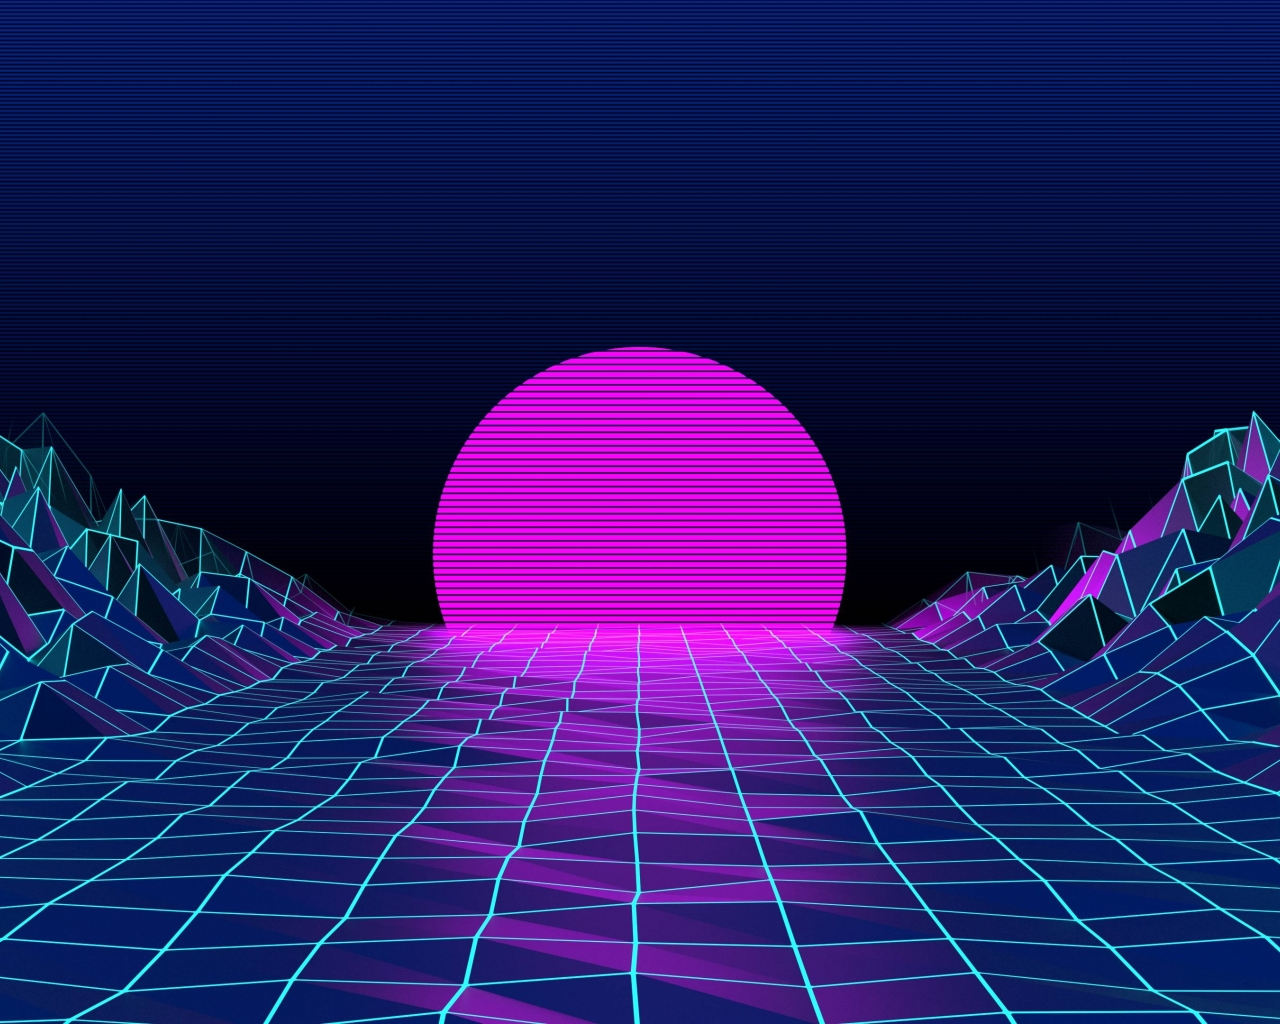 90s Aesthetic Computer Wallpapers Top 90s Aesthetic Aesthetic Wallpaper Laptop 3022813 Hd Wallpaper Backgrounds Download